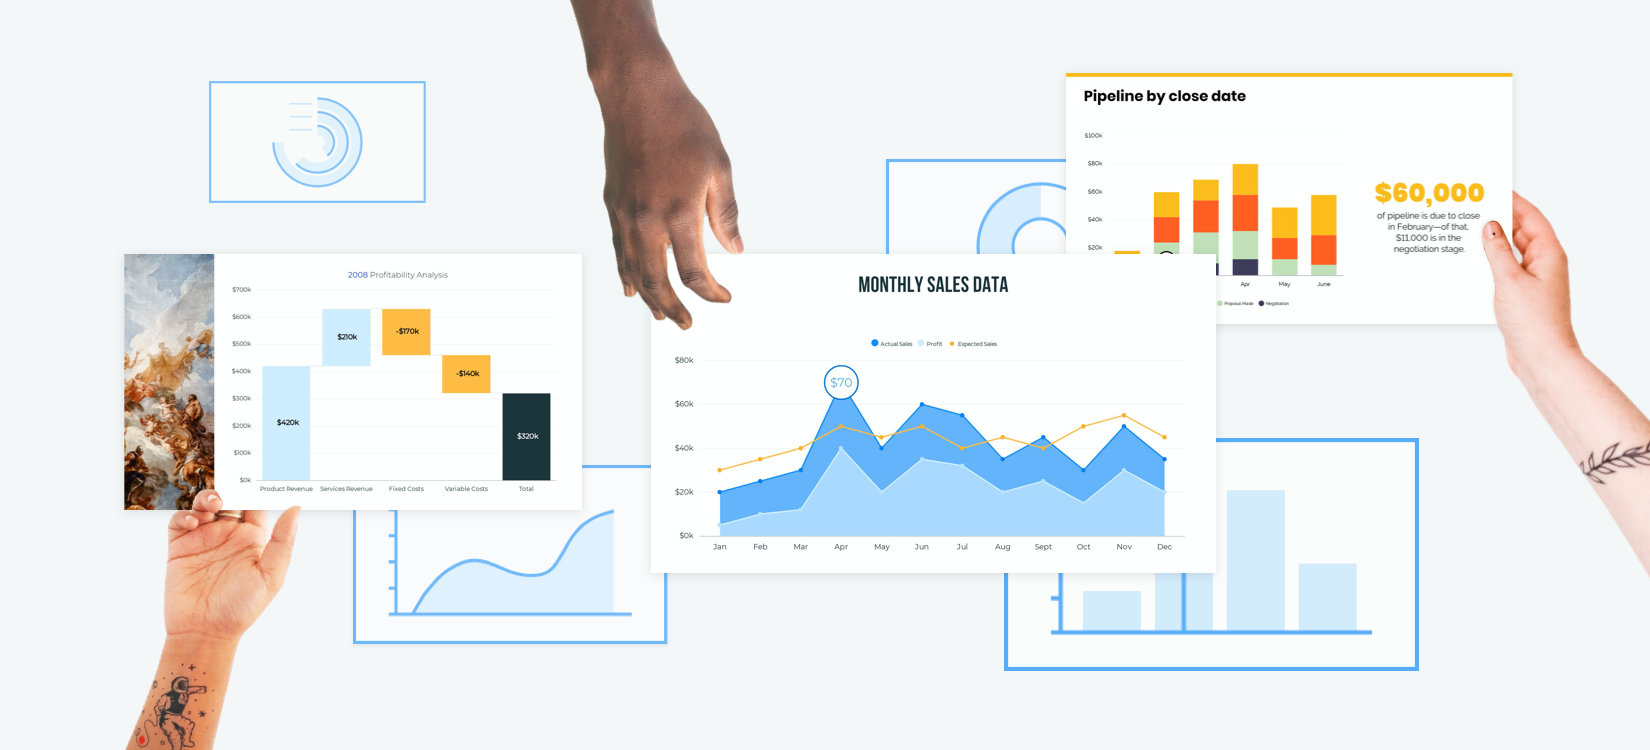 How to Find a Graph or Chart That Makes Your Data Look Good